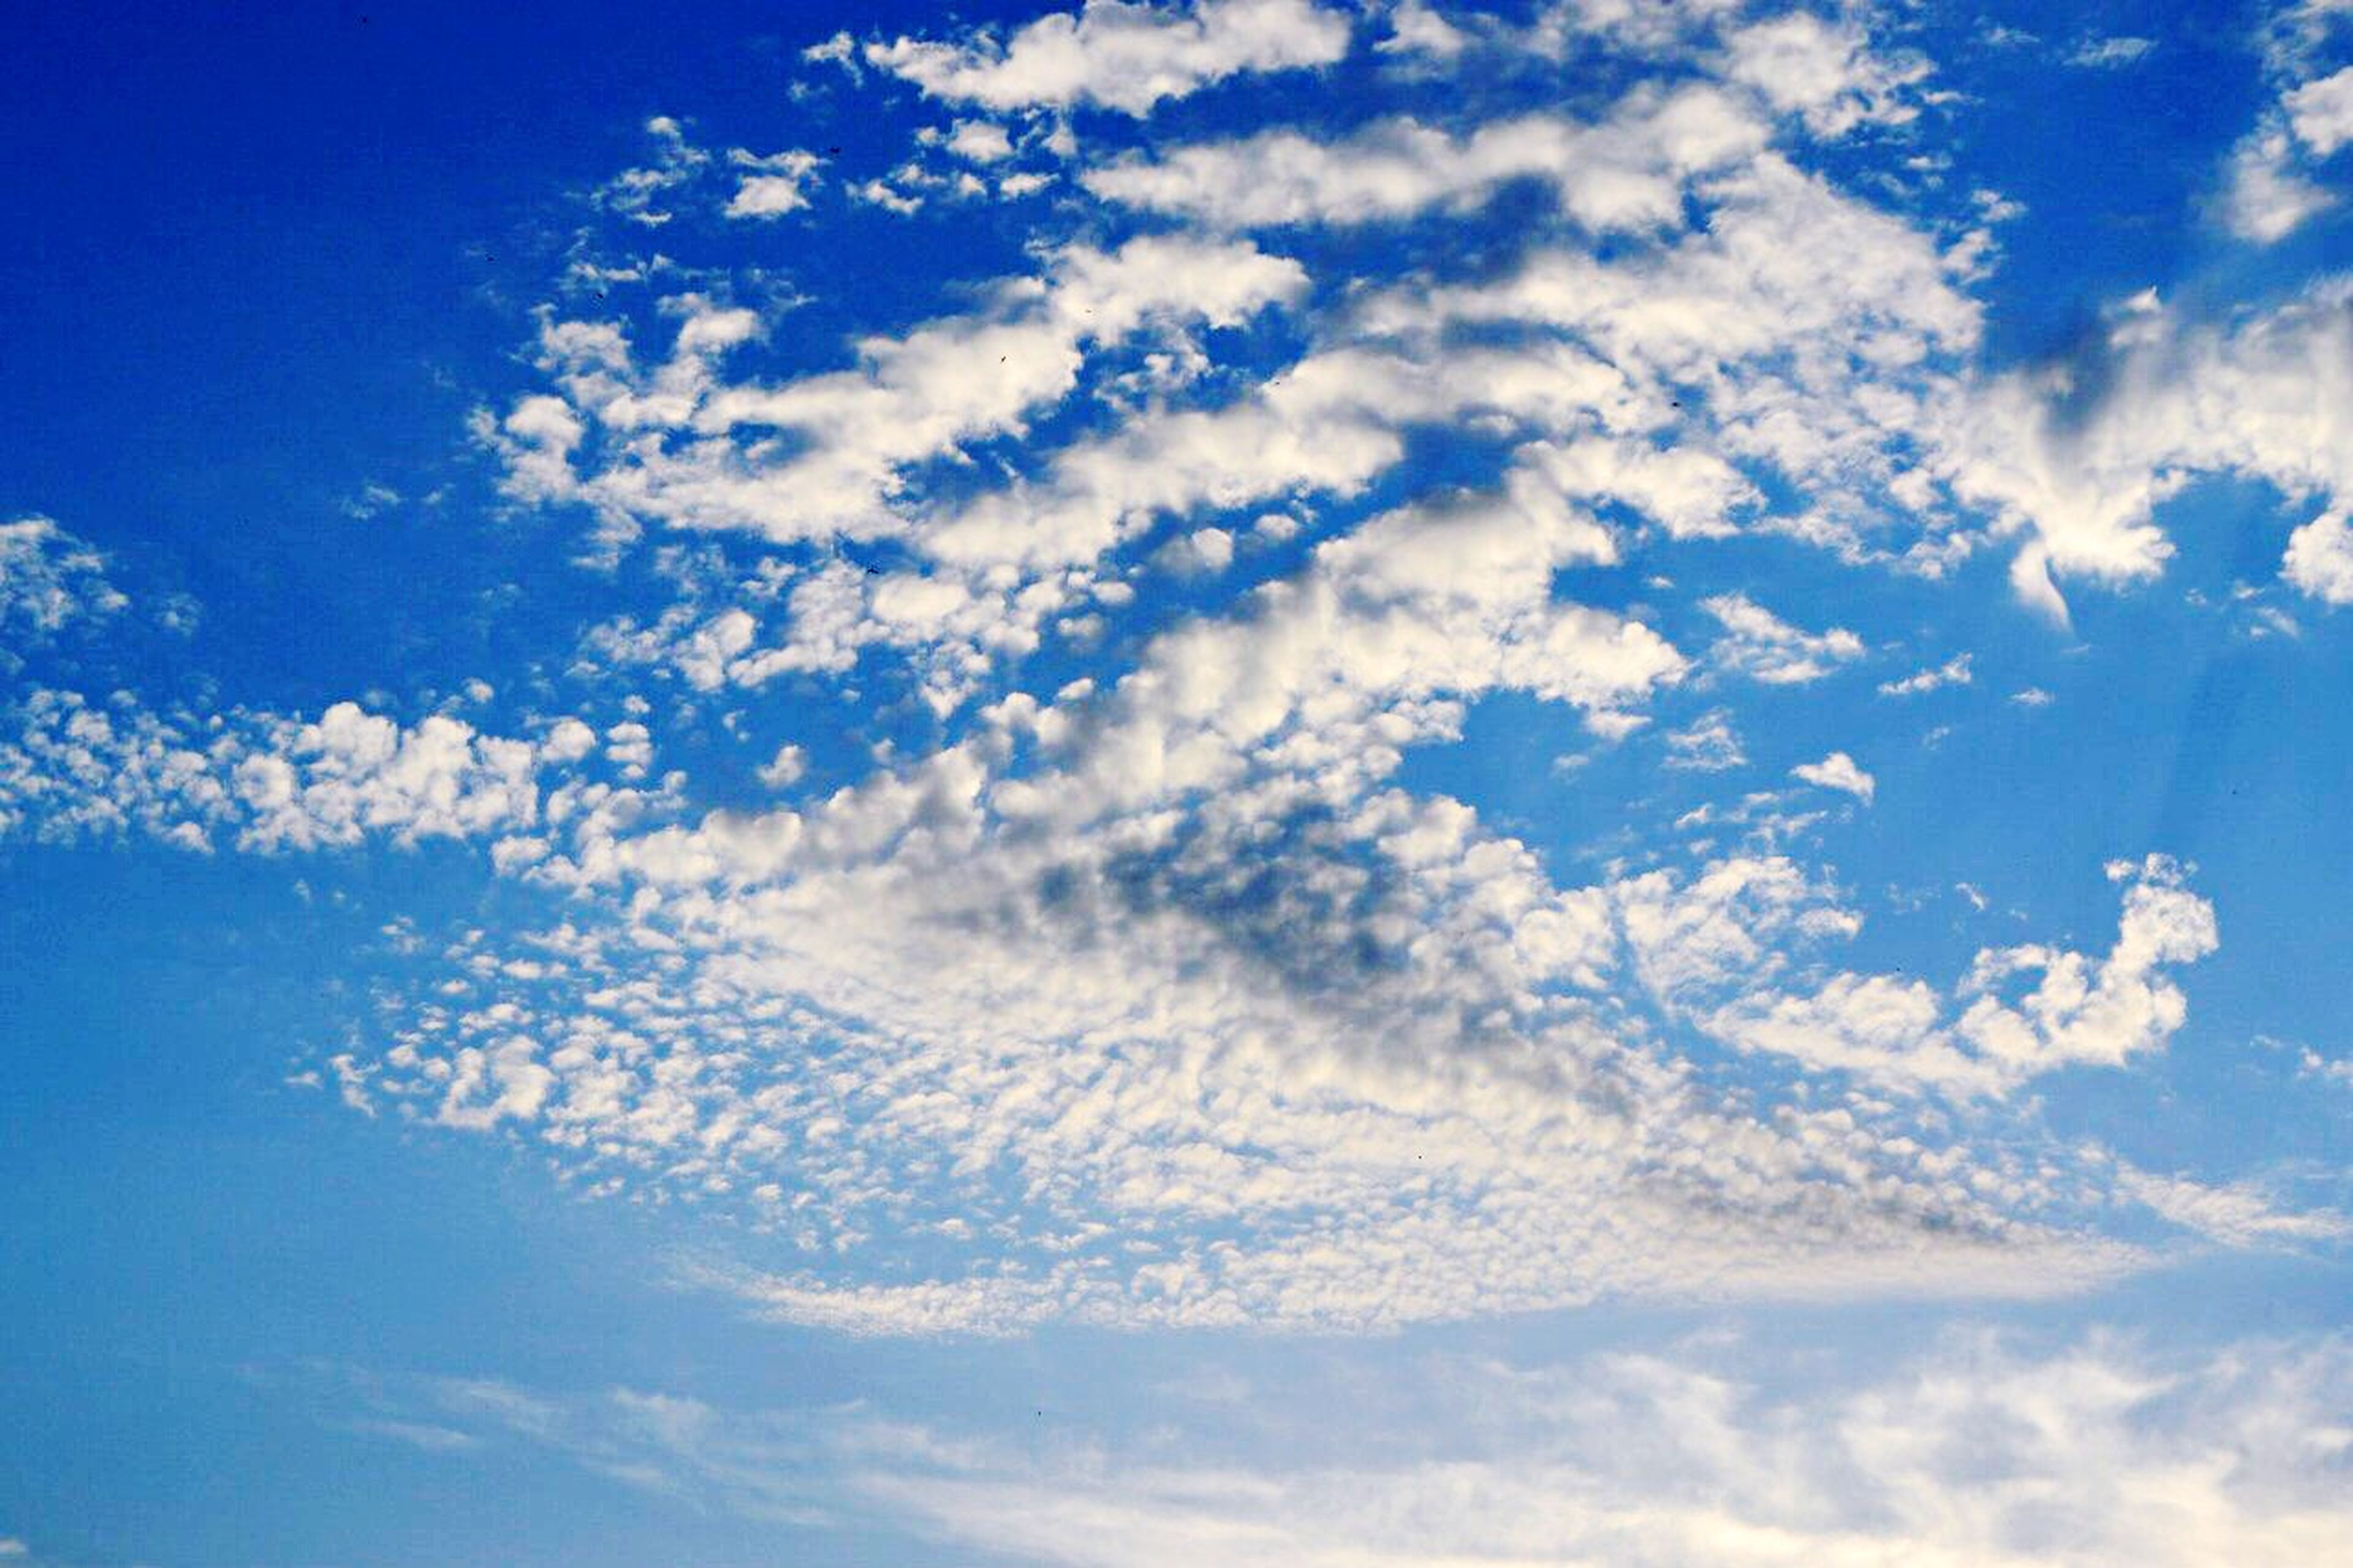 blue, sky, low angle view, cloud - sky, tranquility, beauty in nature, scenics, sky only, tranquil scene, nature, cloud, cloudscape, backgrounds, idyllic, cloudy, outdoors, day, no people, full frame, sunlight